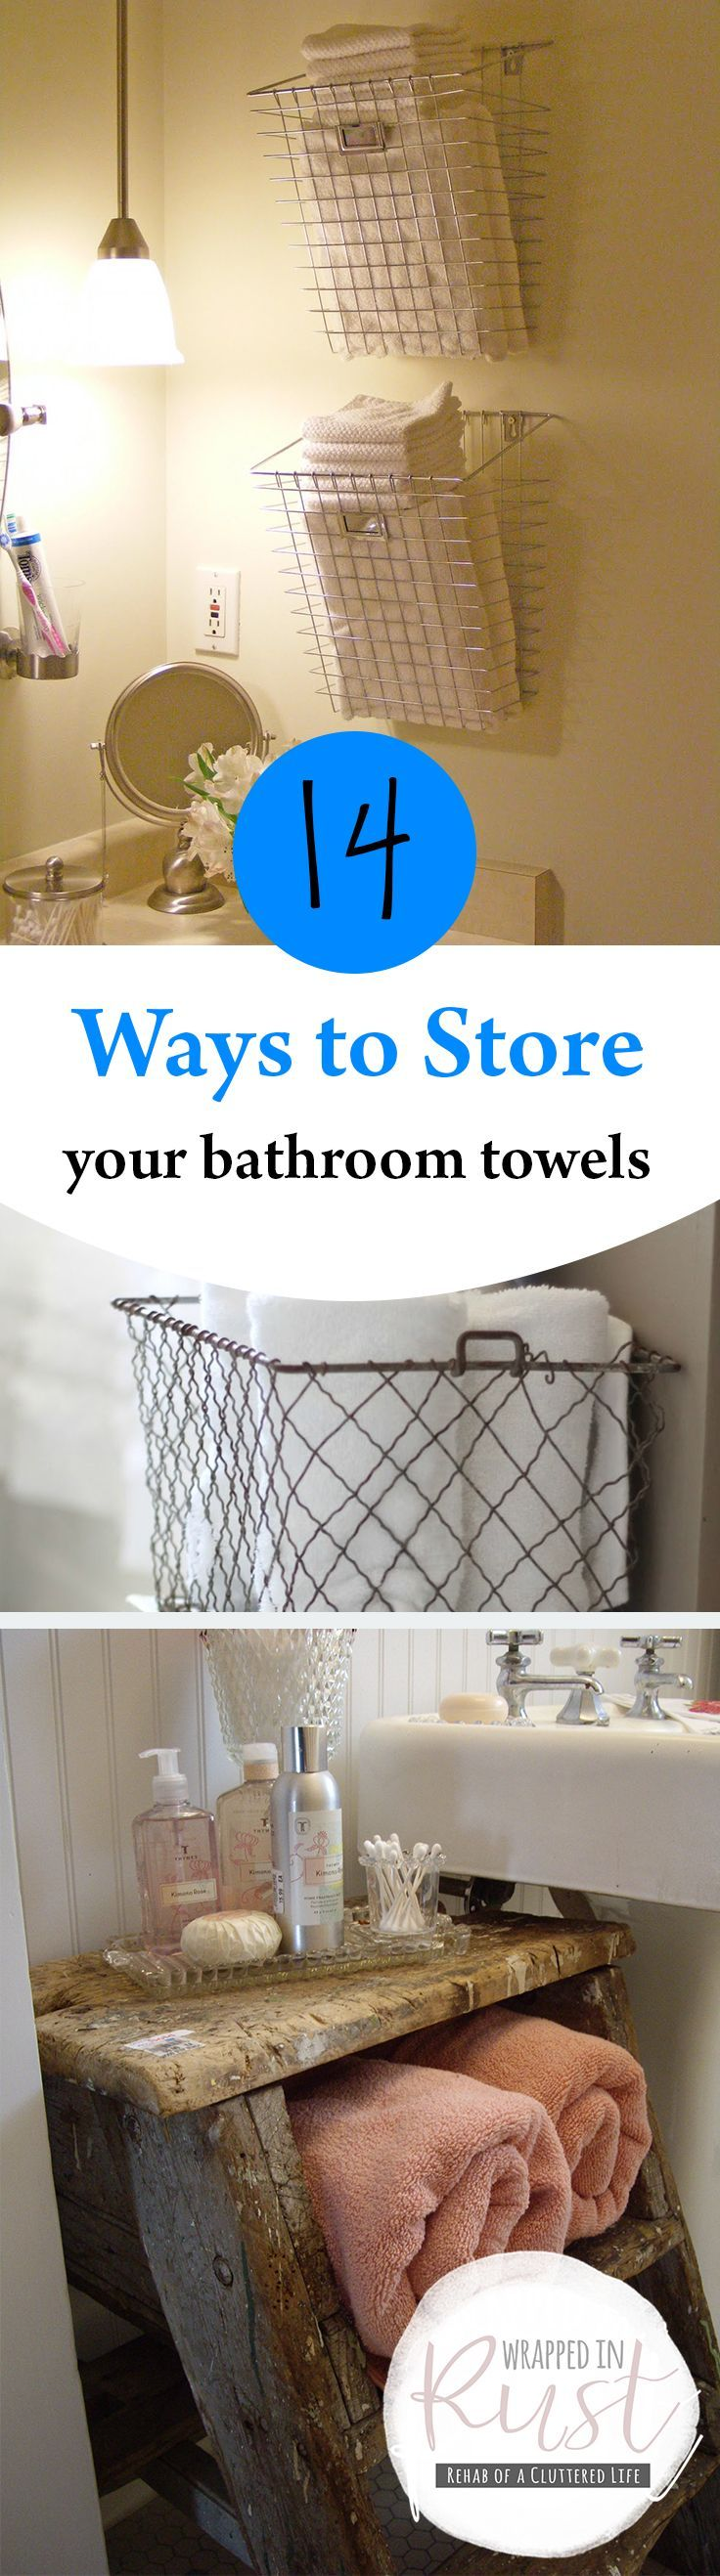 Best Decorative Bathroom Towels Ideas On Pinterest Towel - Cheap decorative towels for small bathroom ideas